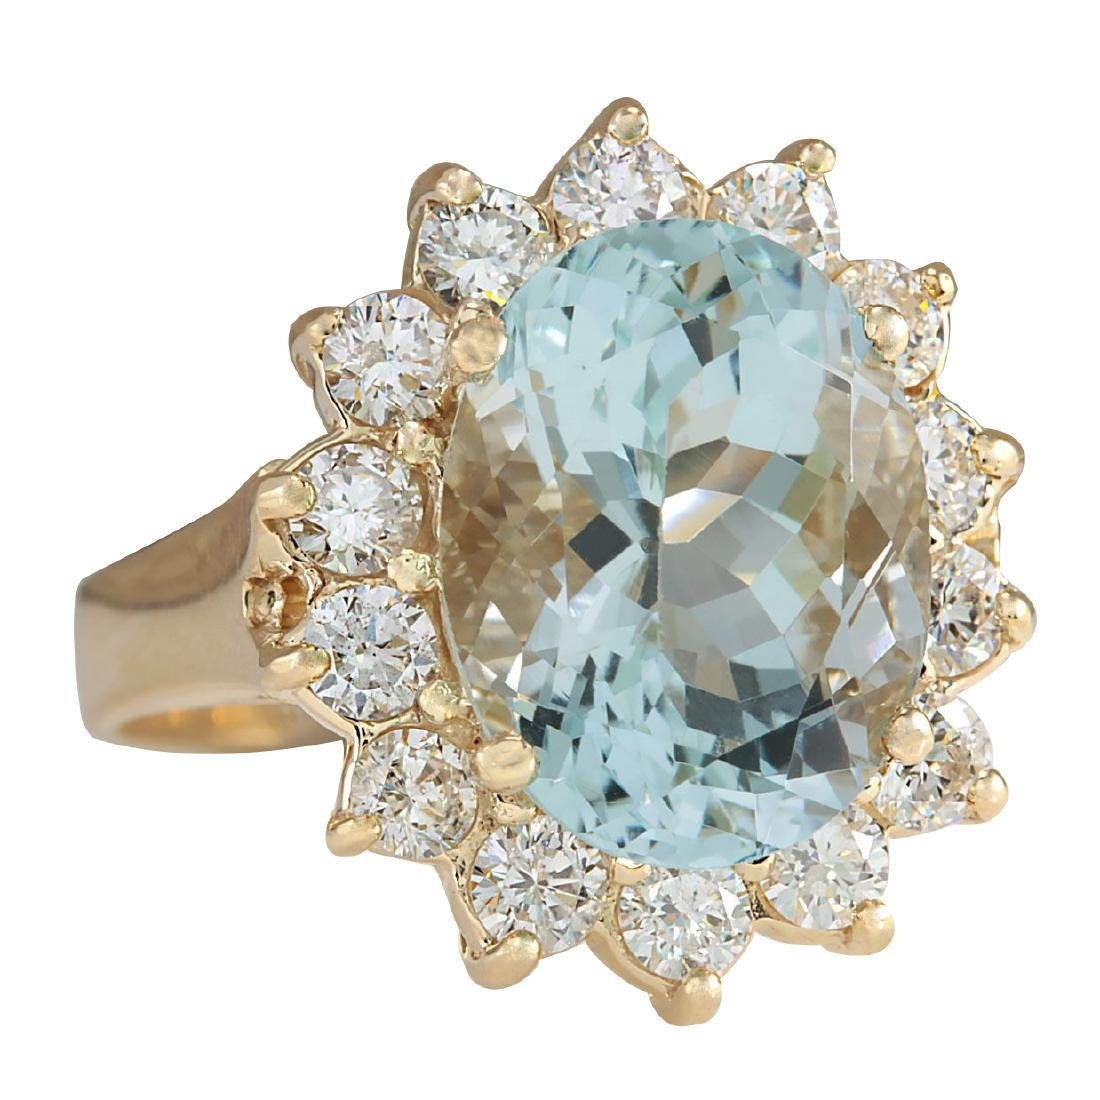 10.48Ct Natural Aquamarine And Diamond Ring In18K Solid - 2